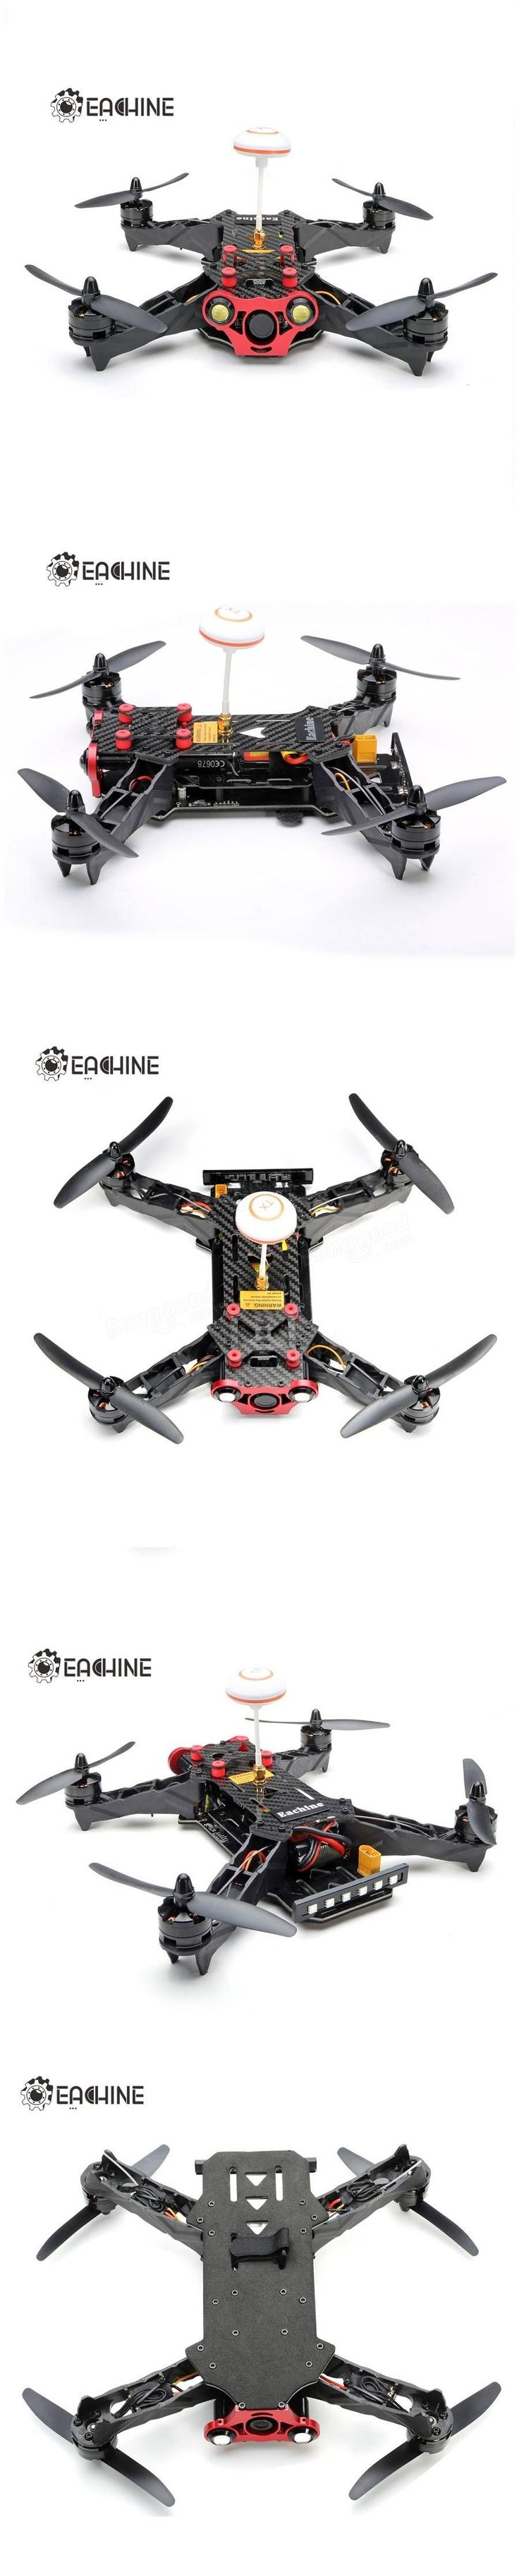 Eachine Racer 250 FPV Drone Built in 5.8G Transmitter OSD With HD Camera ARF Version Sale-Banggood.com #DroneTips